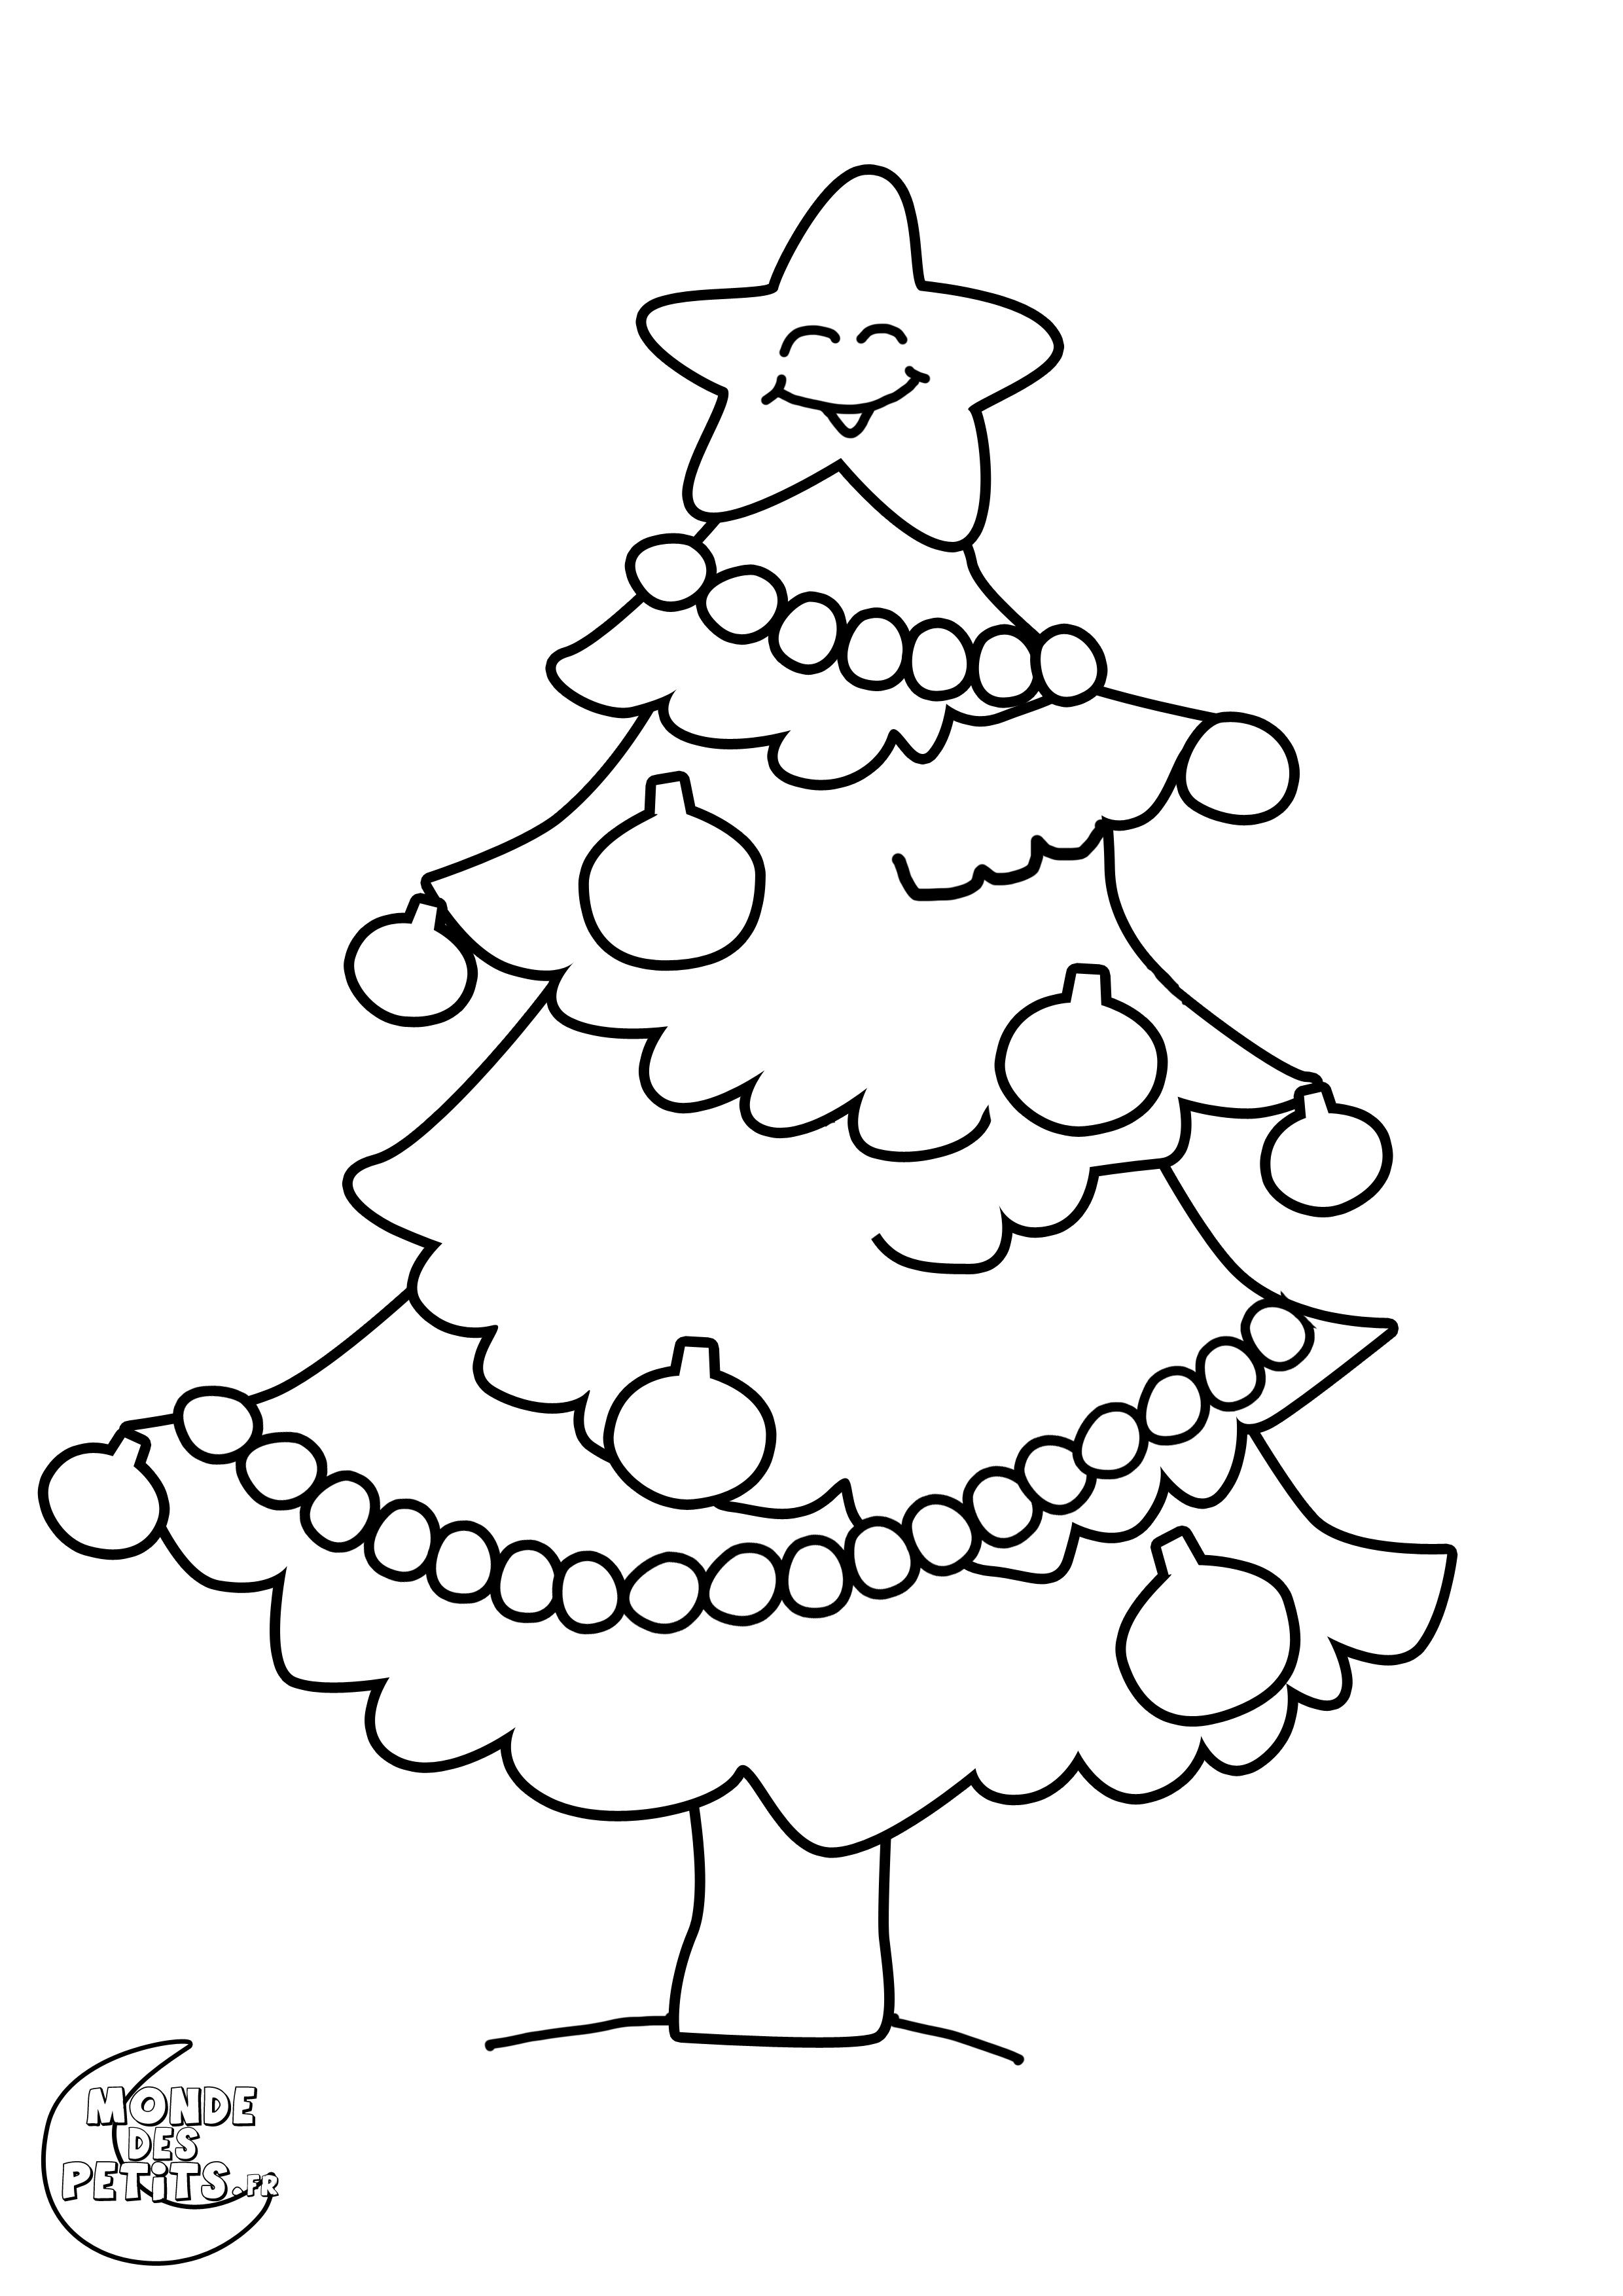 Coloriage P¨re No l Coloriage Bonhomme de neige Coloriage Sapin